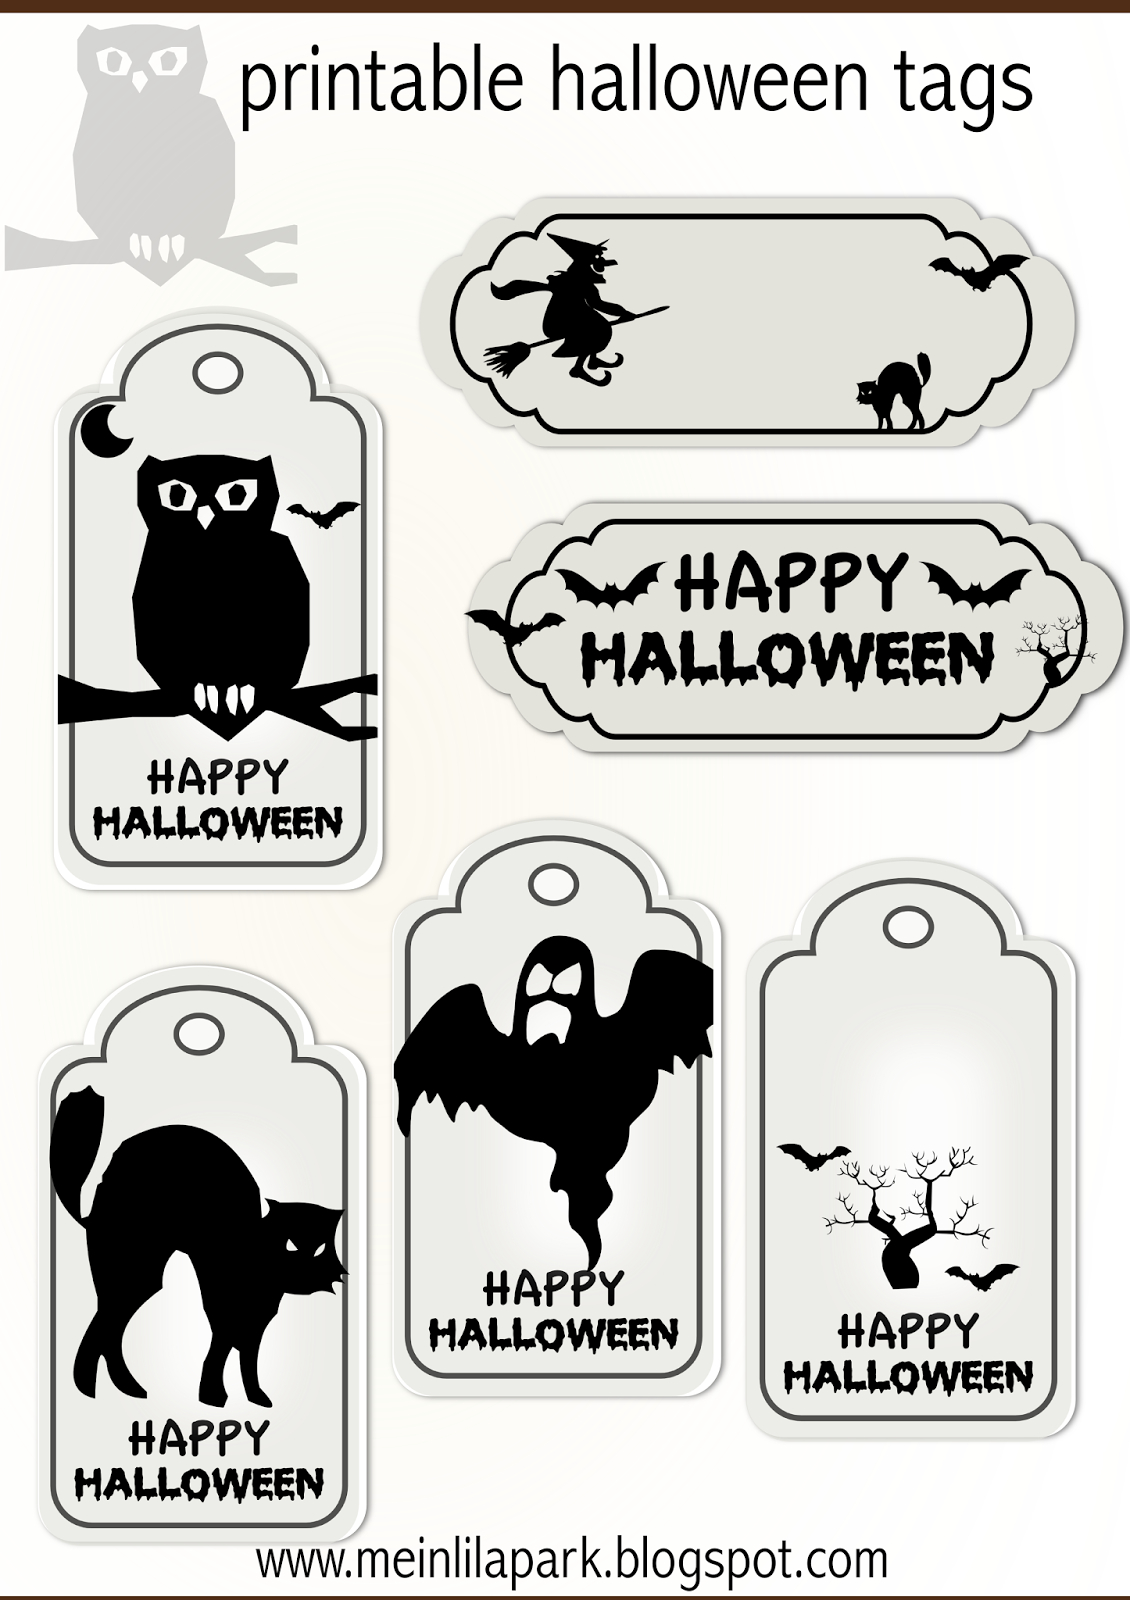 Free Printable Halloween Tags - Druckvorlage Halloween - Freebie - Free Printable Halloween Labels